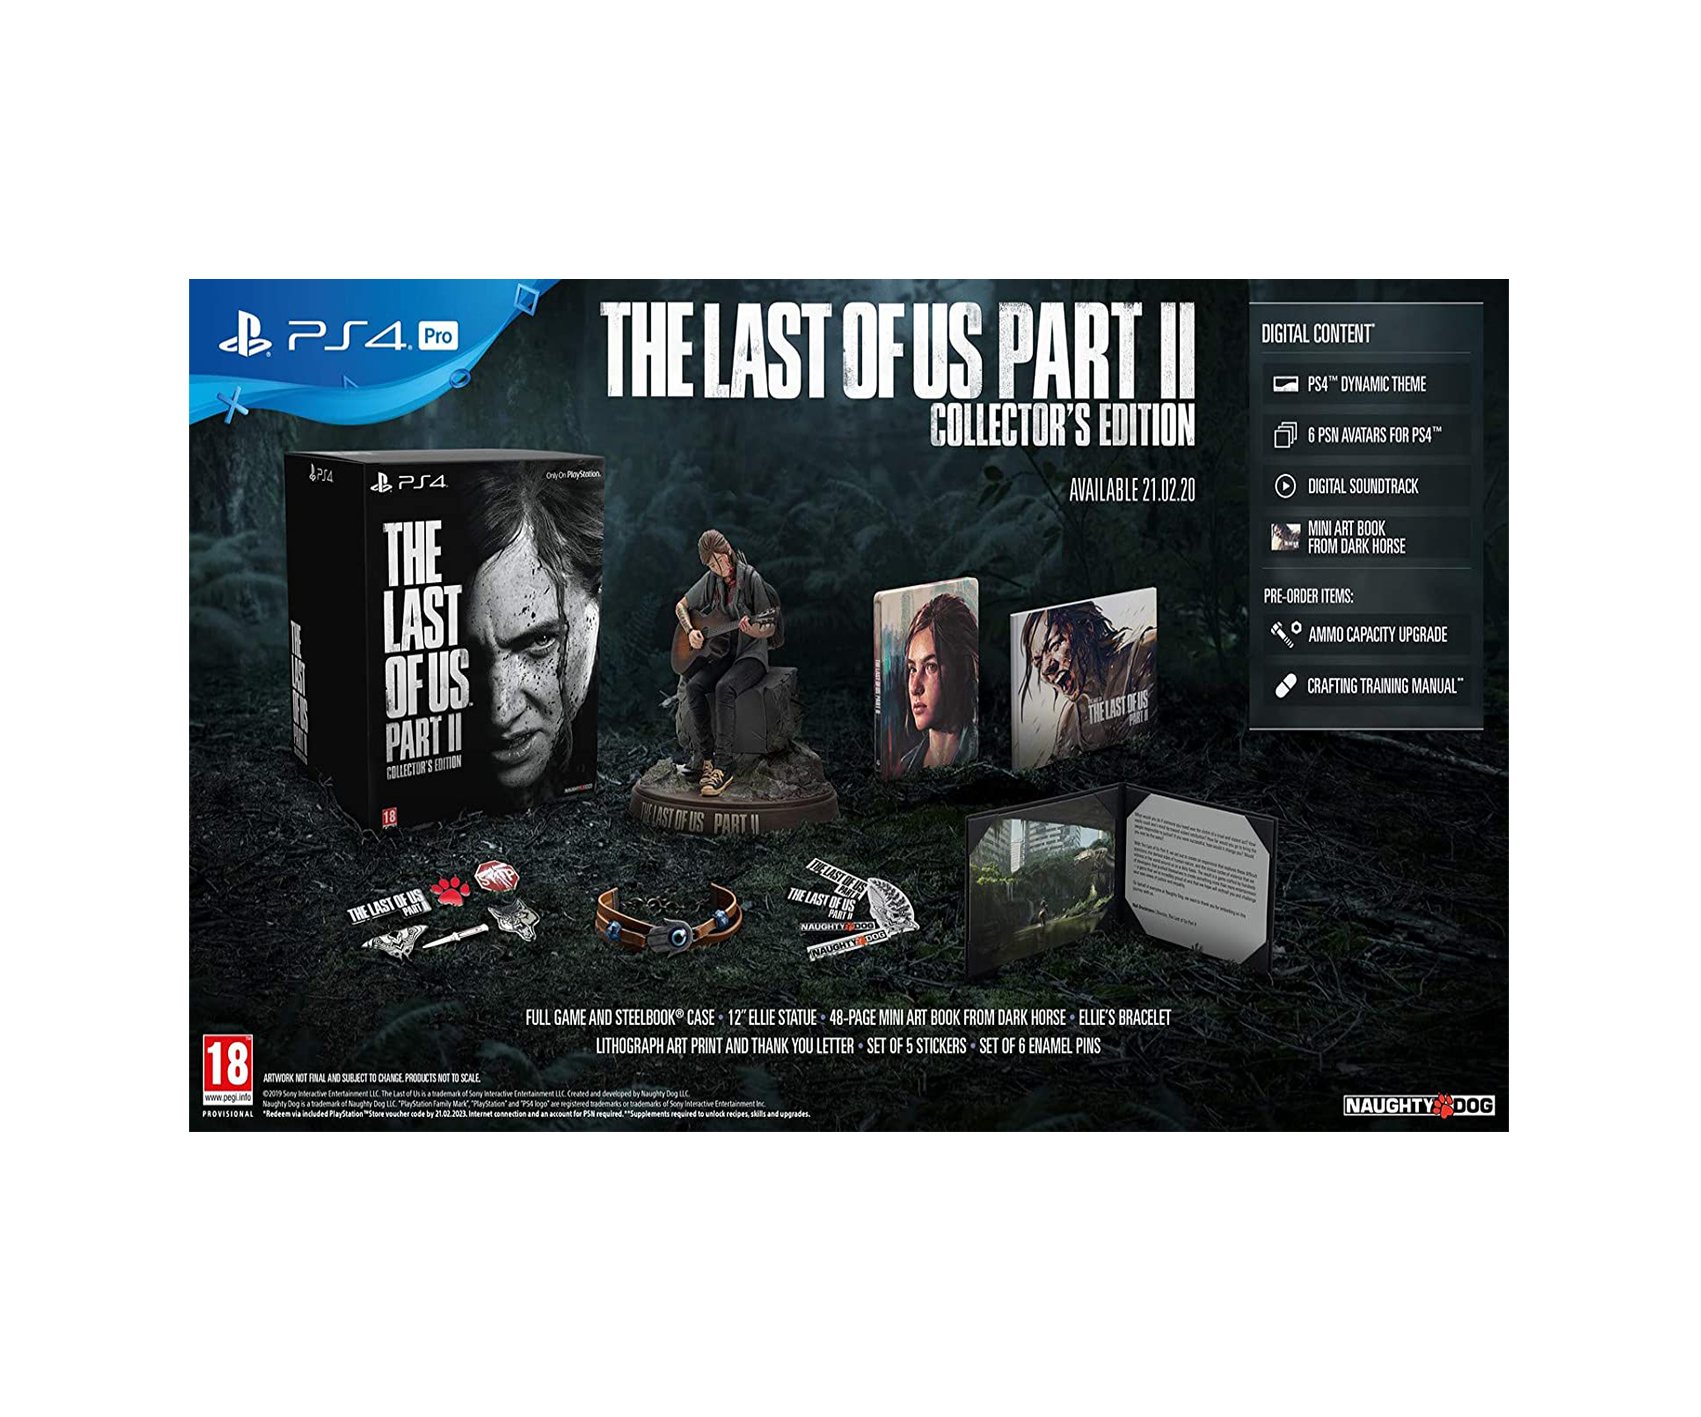 The Last of US II Collector Edition